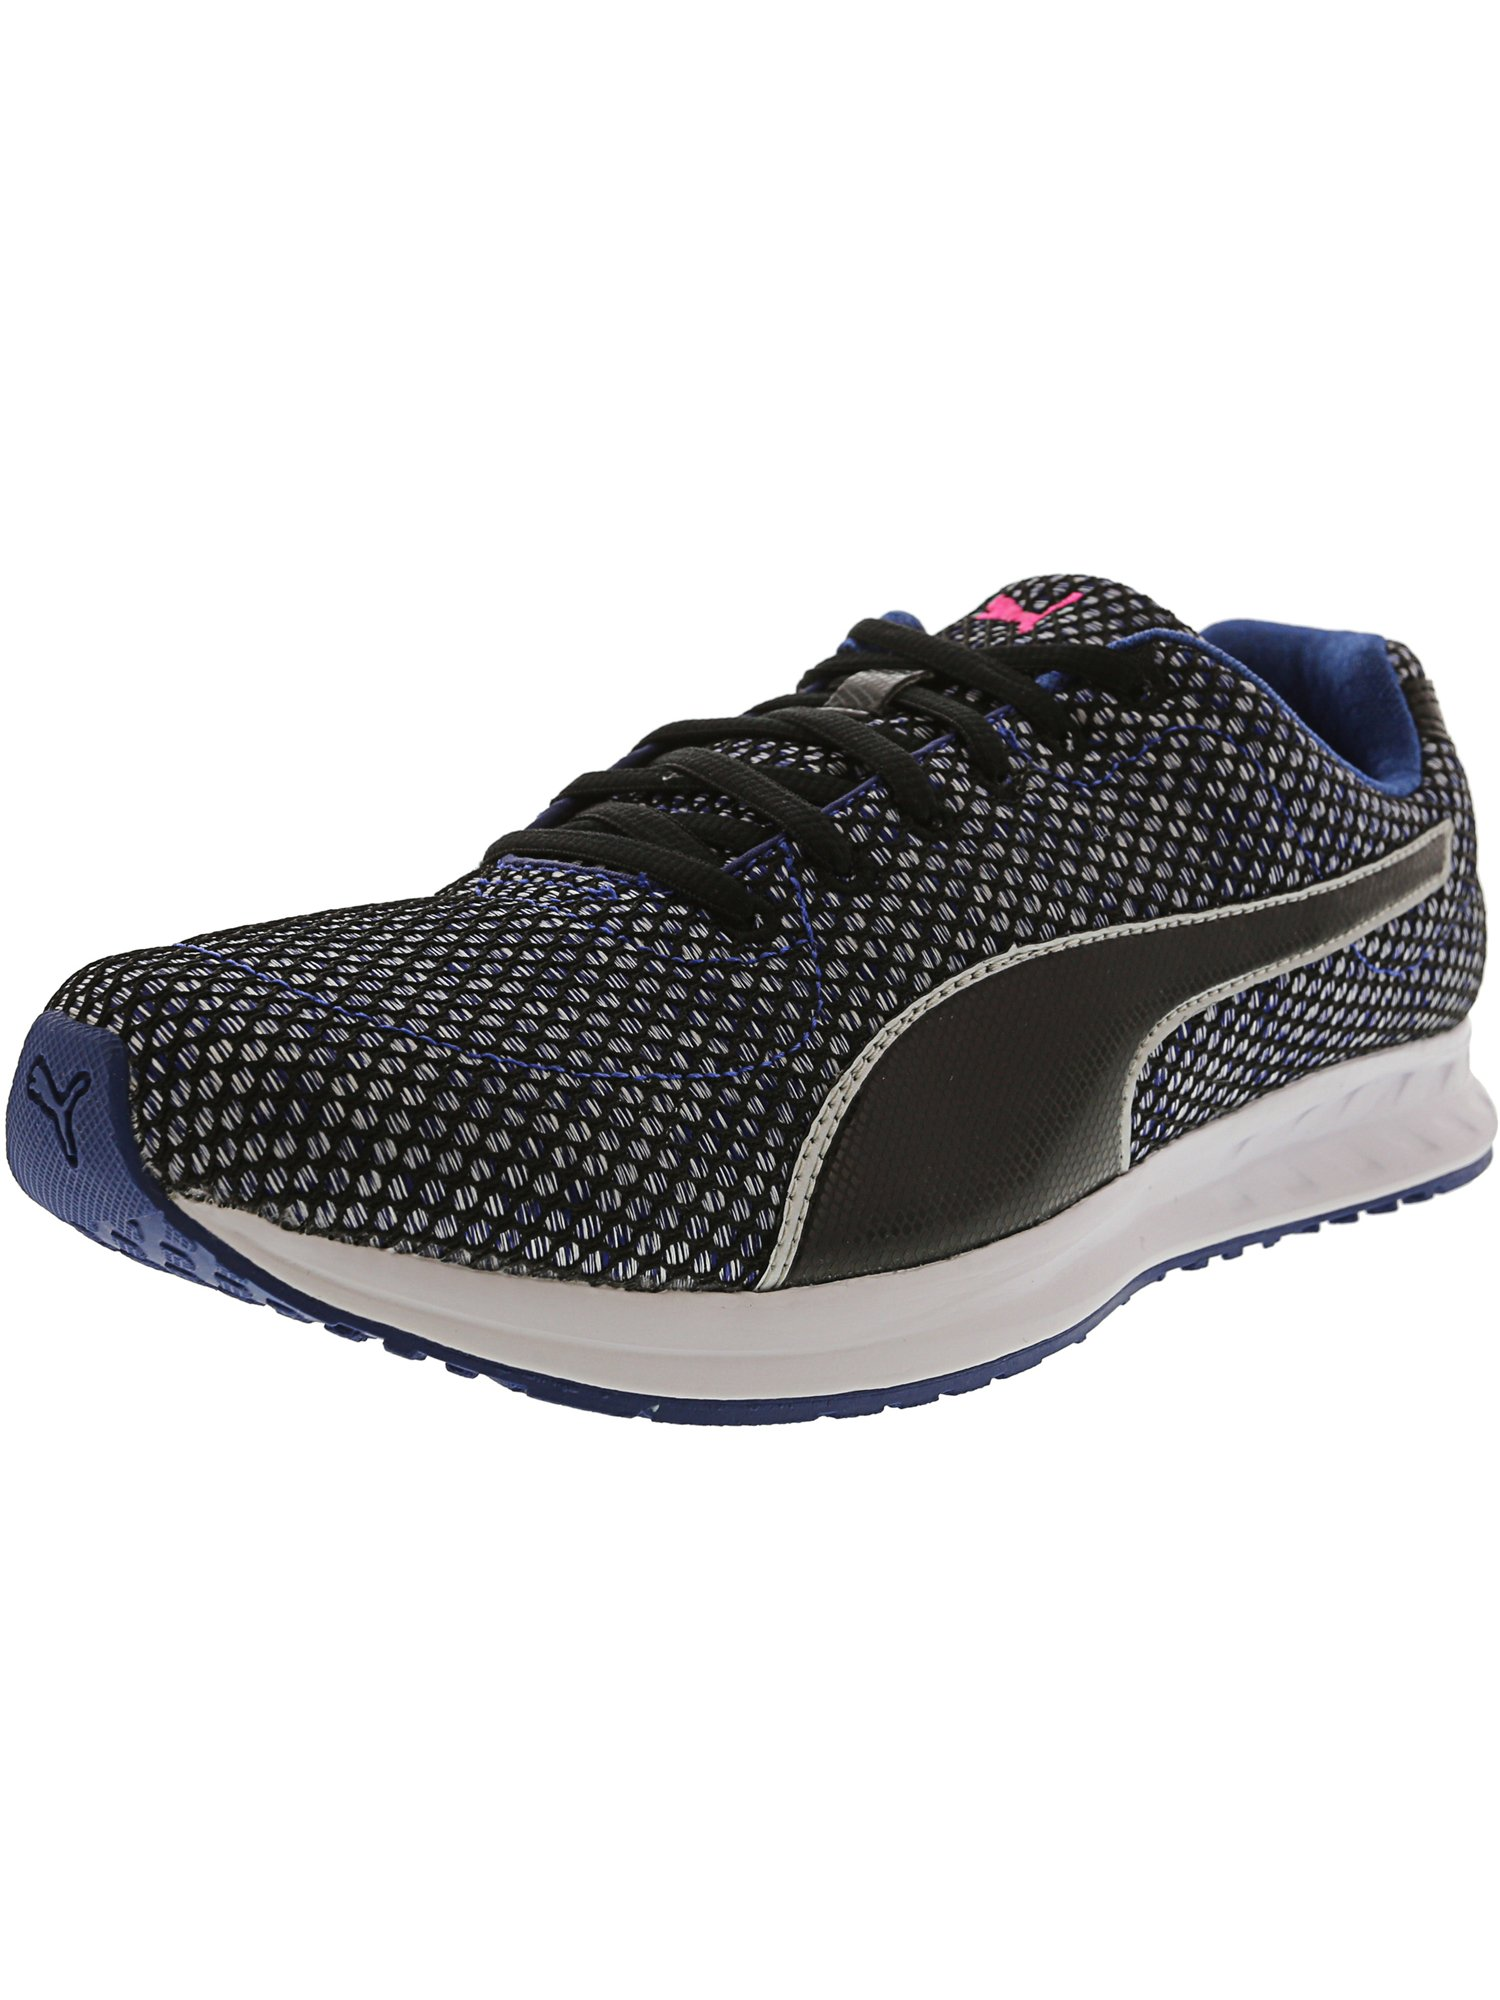 Puma Women's Burst Tech True Blue / Black White Ankle-High Mesh Running Shoe - 9M